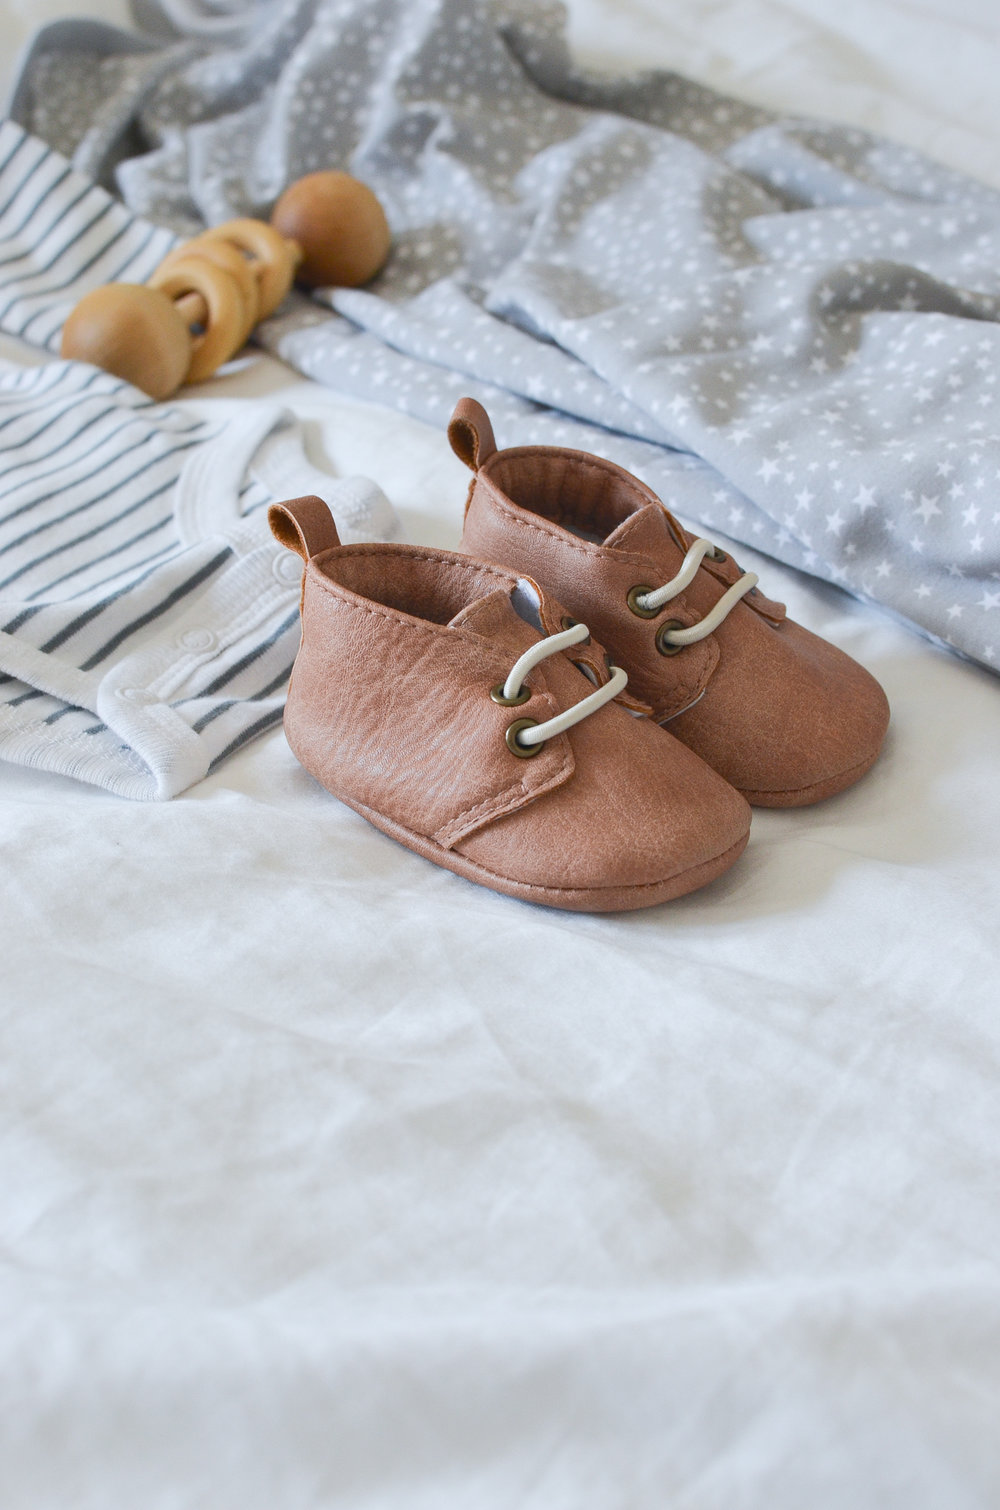 Baby Shoes | Baby Oxfords | Baby Gift Ideas | Baby Moccasins | Sweet N Swag